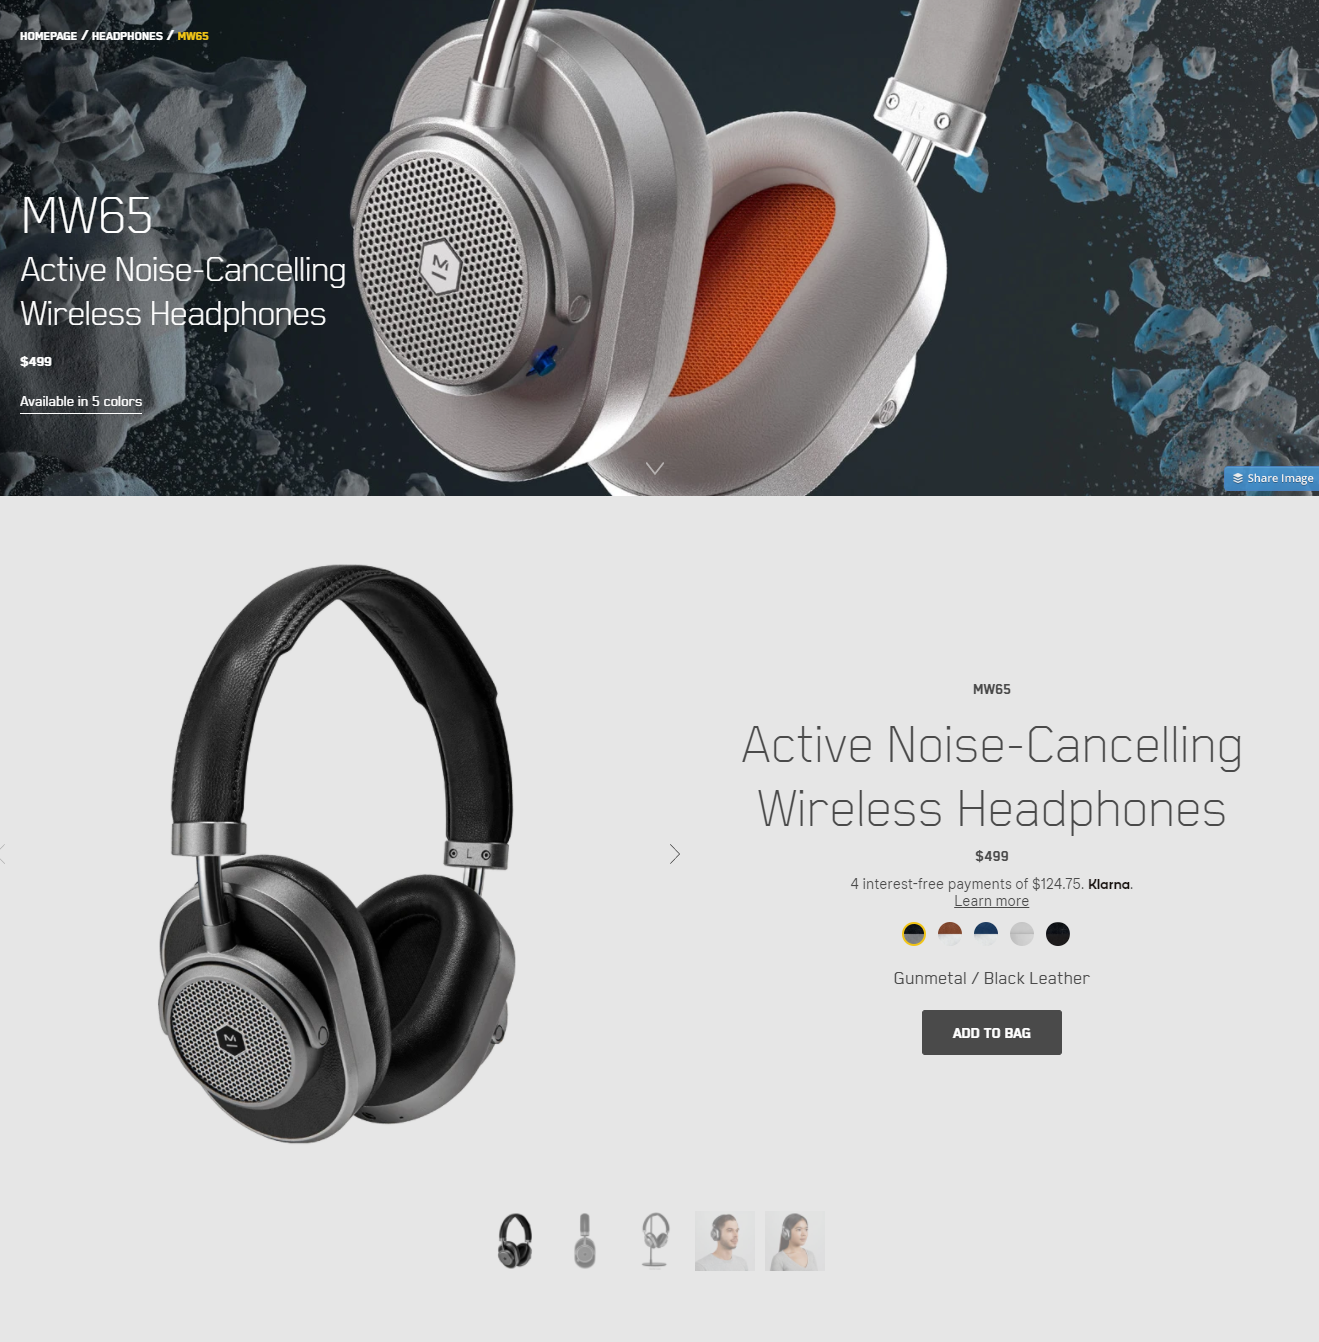 A close-up of some headphonesDescription automatically generated with low confidence